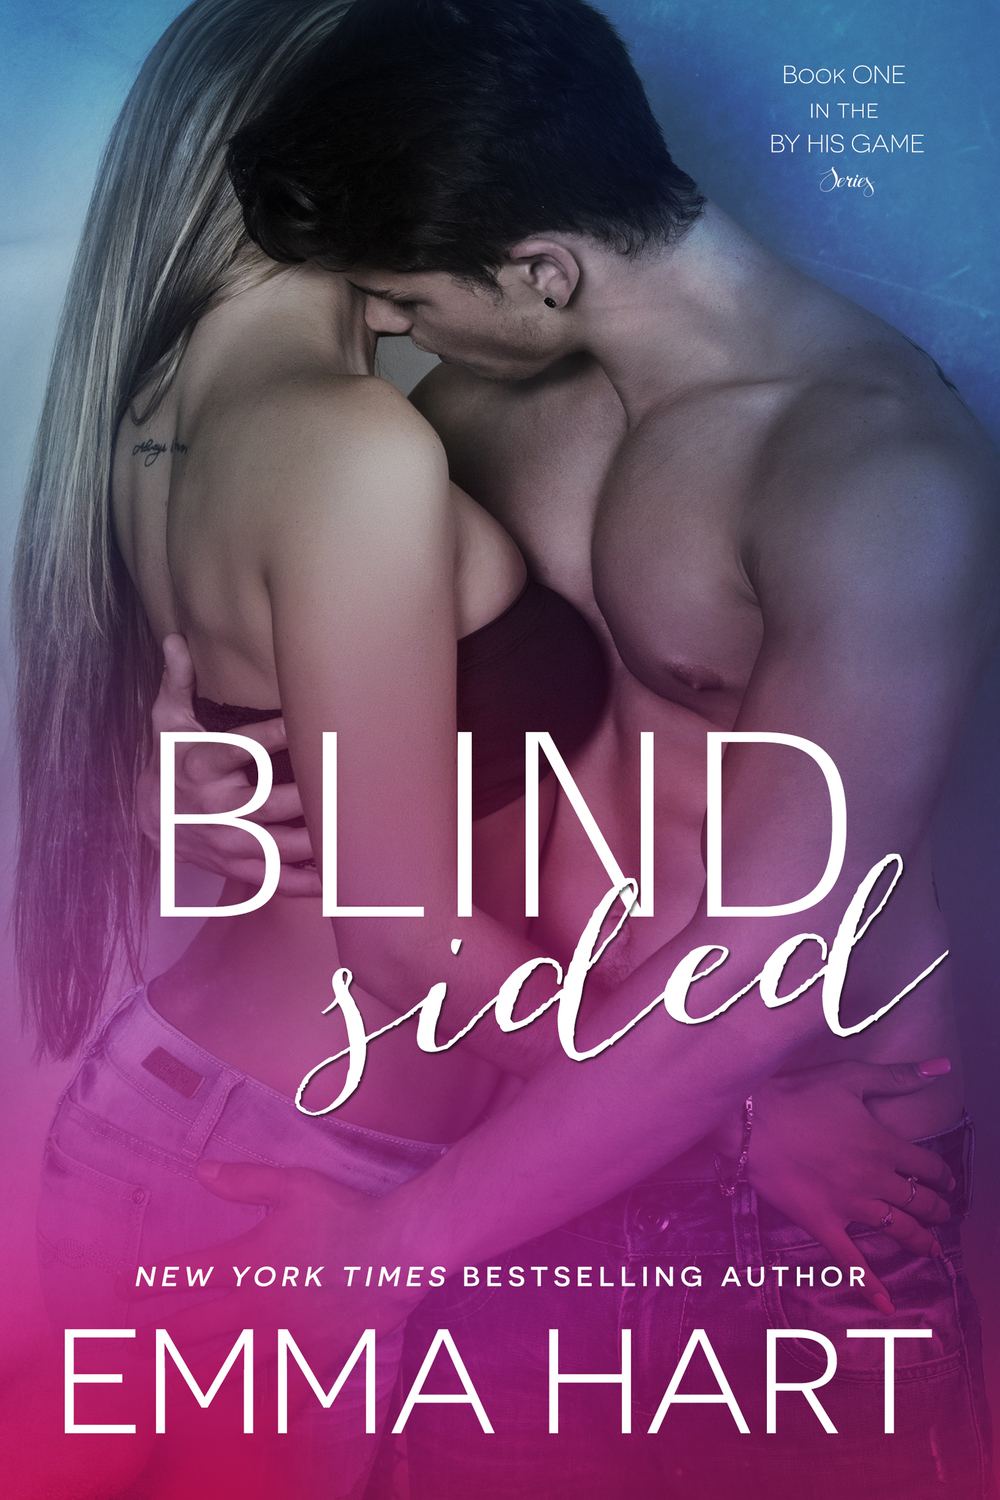 BLINDSIDED EMMA HEART ITUNES_SMASHWORDS EBOOK COVER.jpg